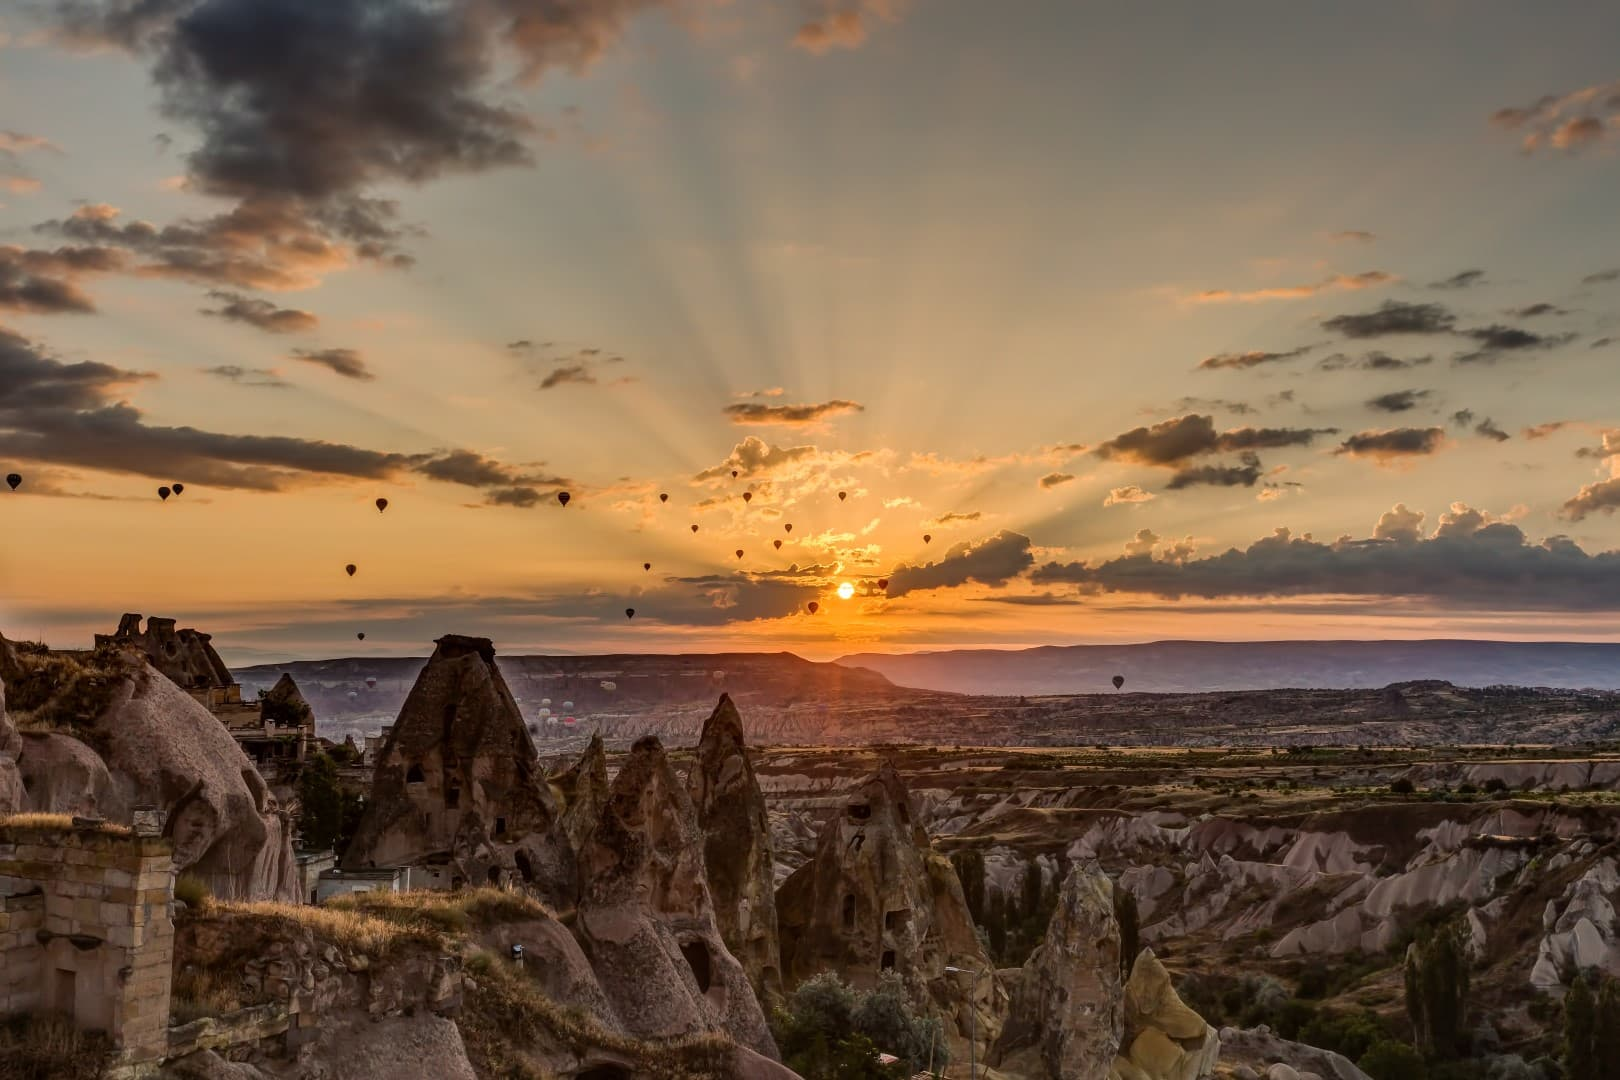 How to Get to Cappadocia from Istanbul